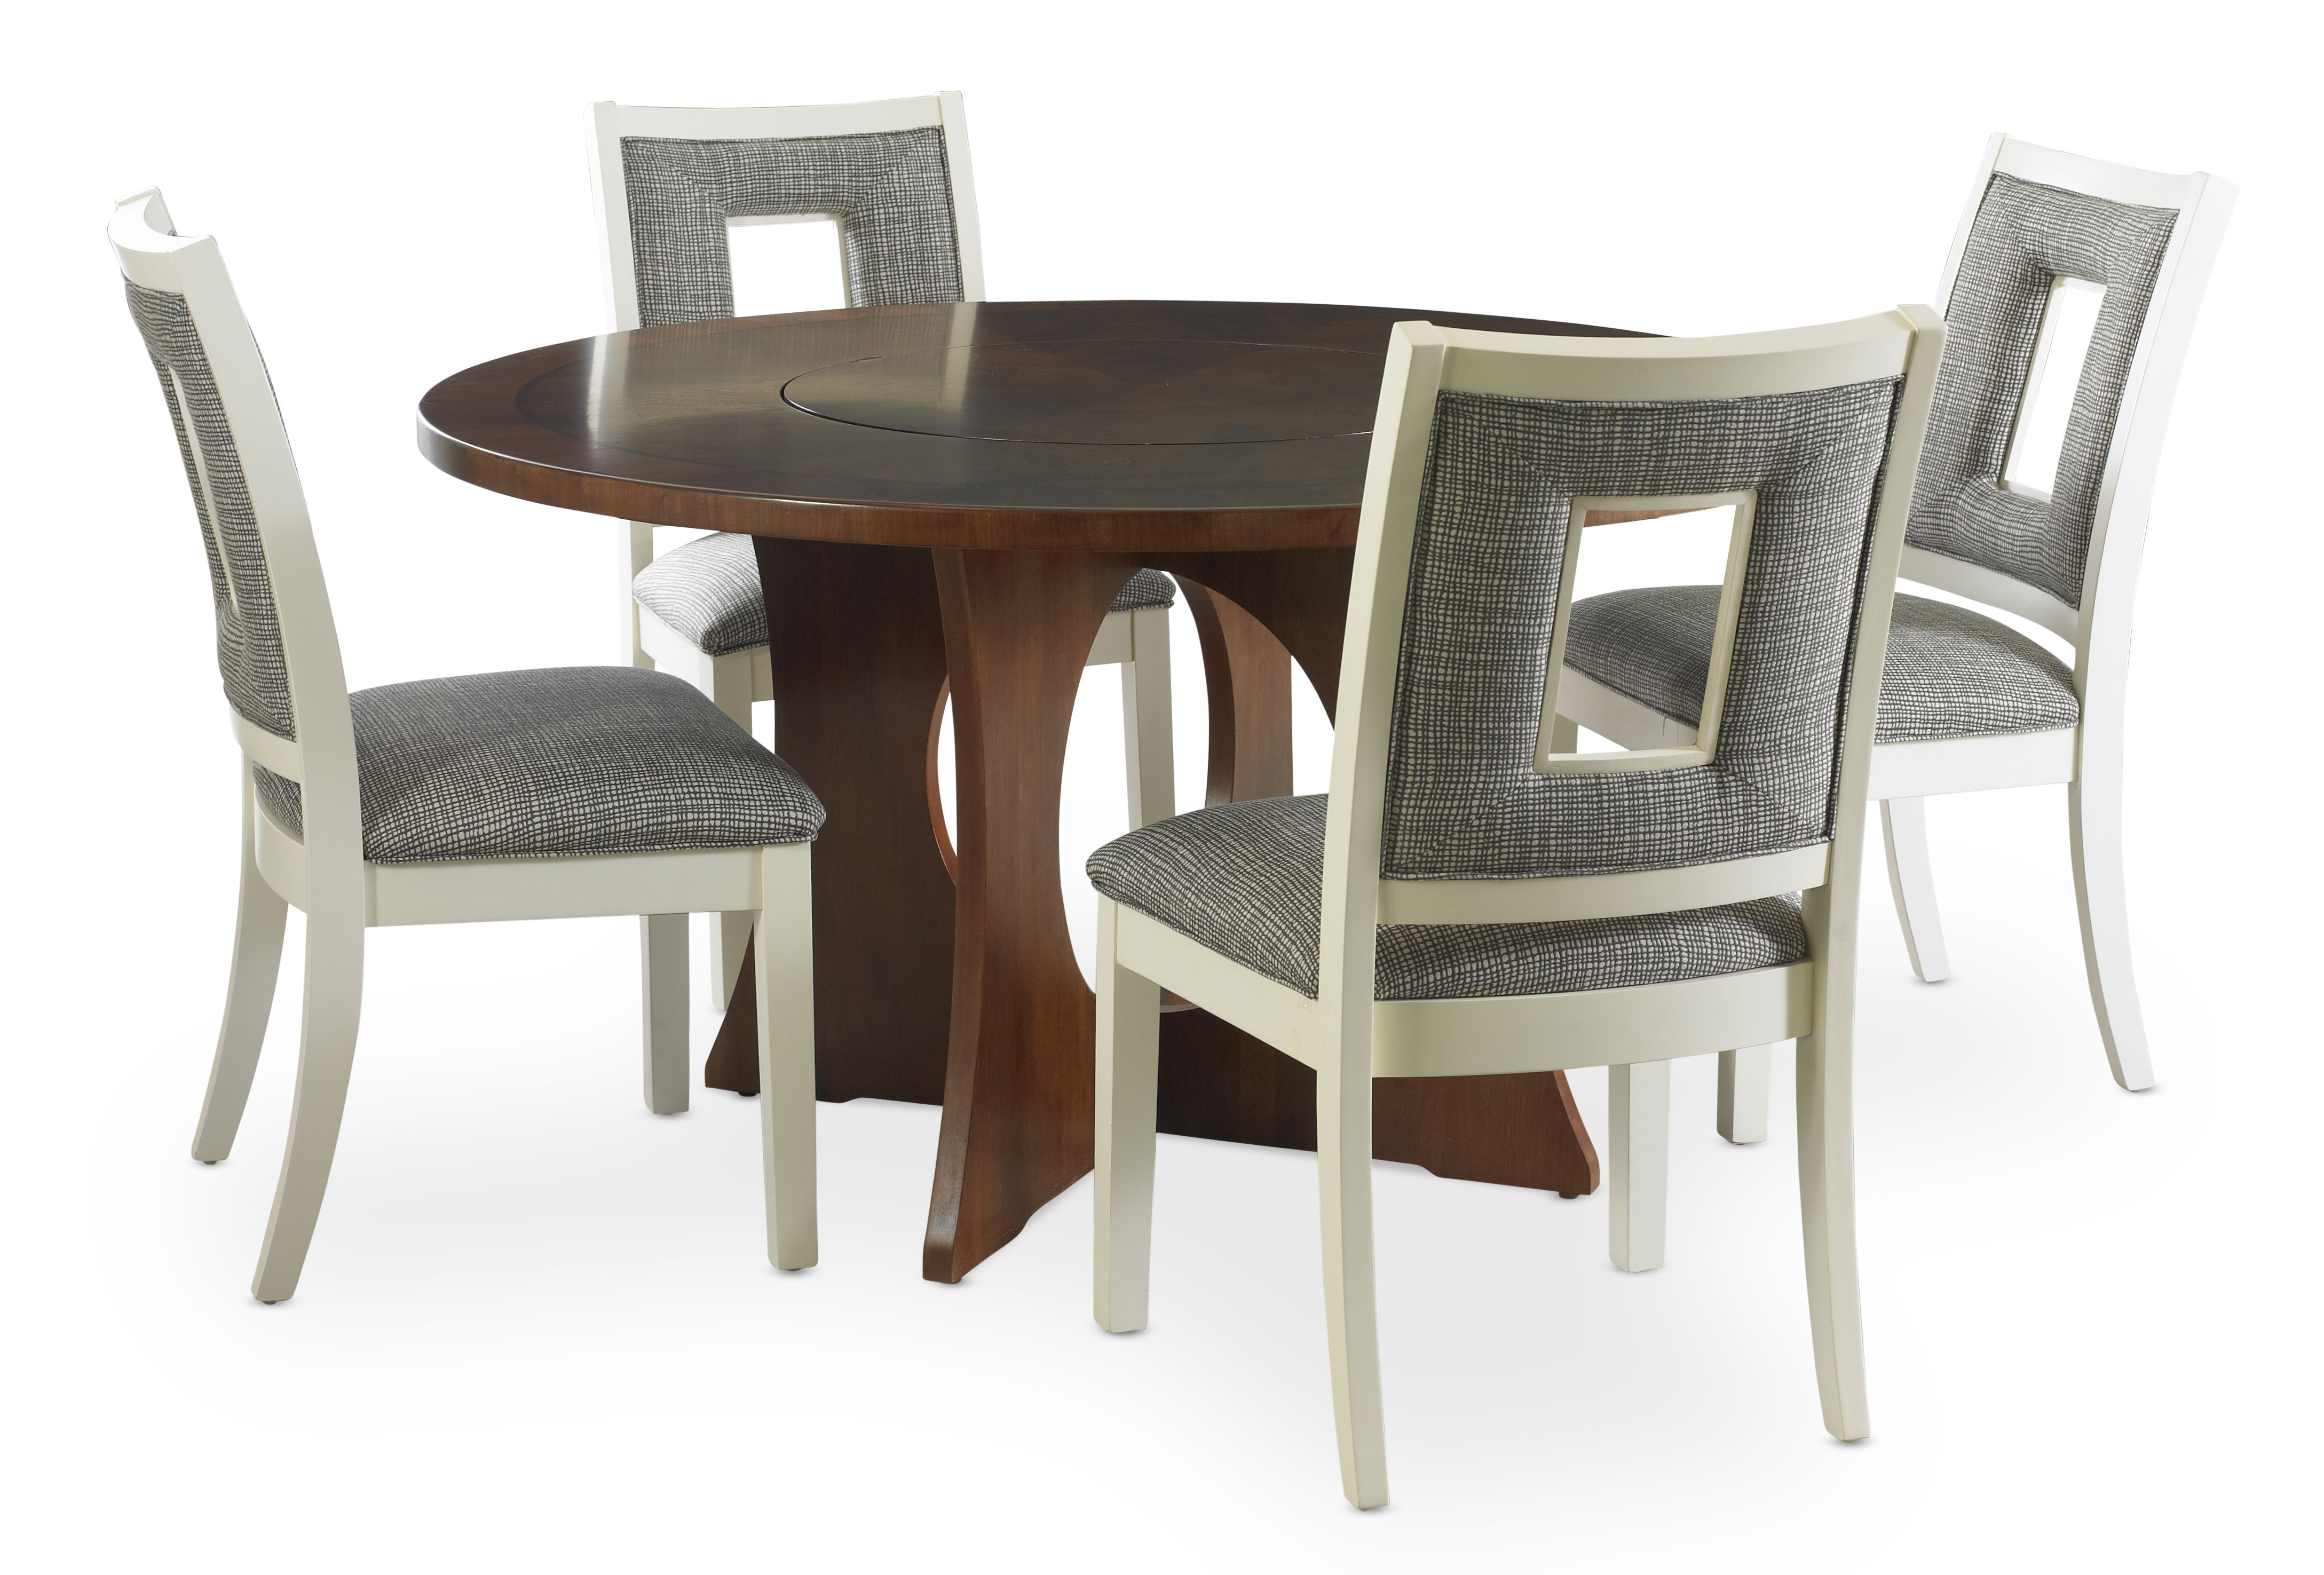 versatile furniture. Versatile Furniture. The Naomi Chair From Somerton Dwelling Furniture Is Fun And For Your